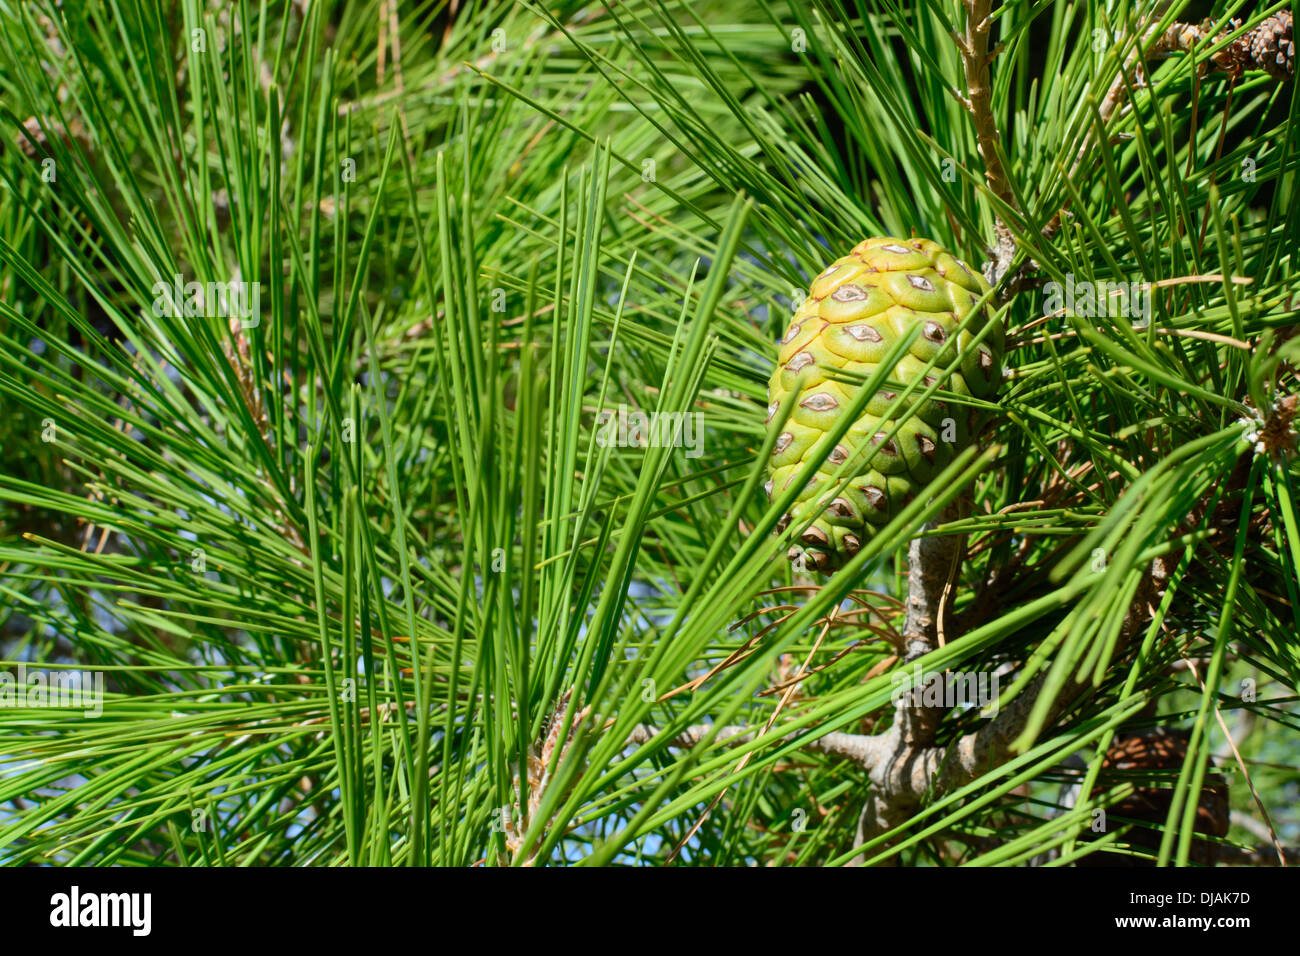 Aleppo pine closeup Pinus halepensis with copy space. - Stock Image